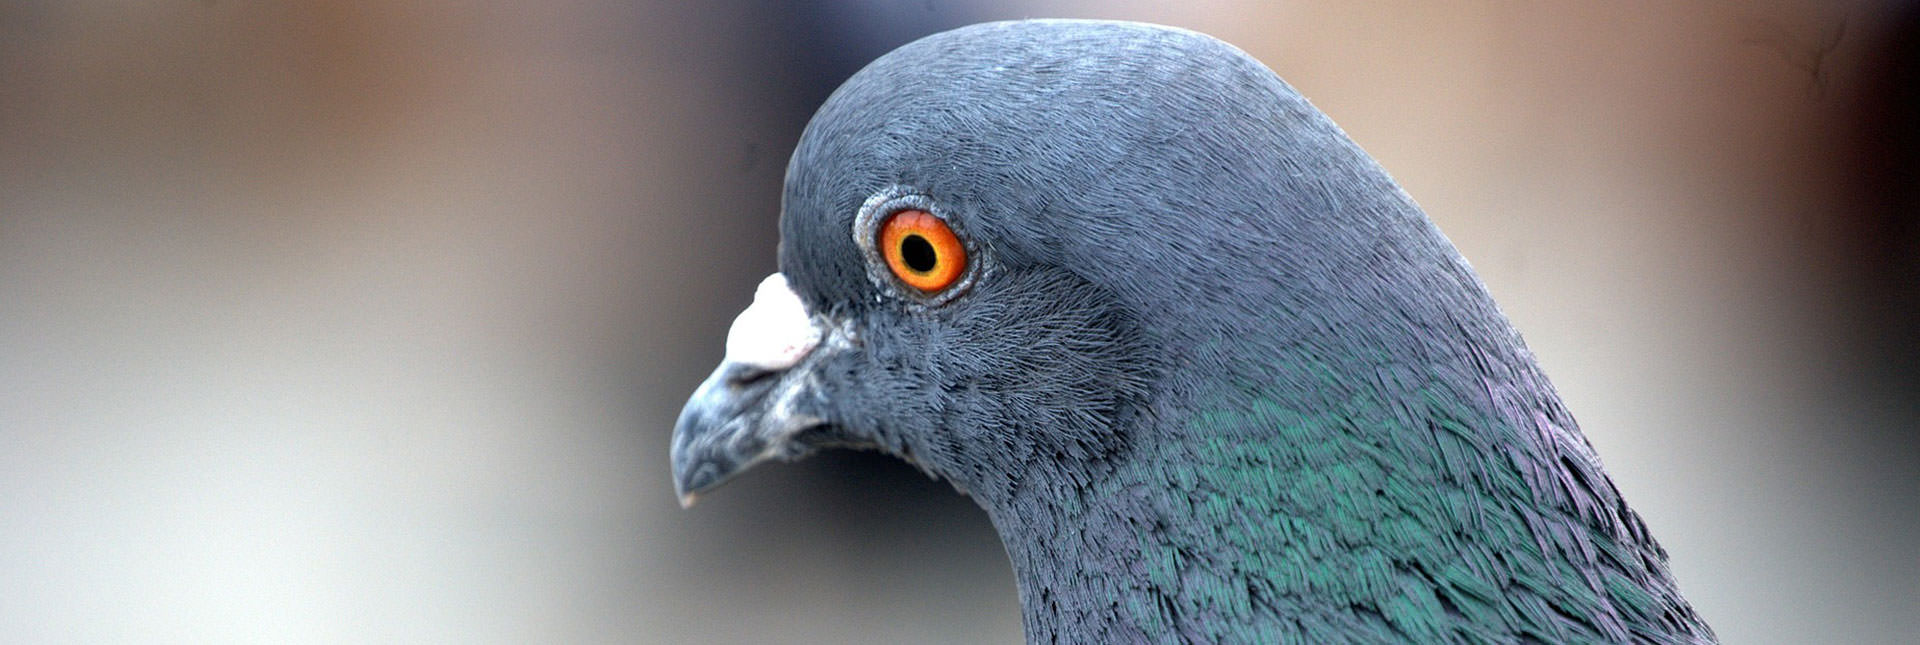 Pigeon Removal